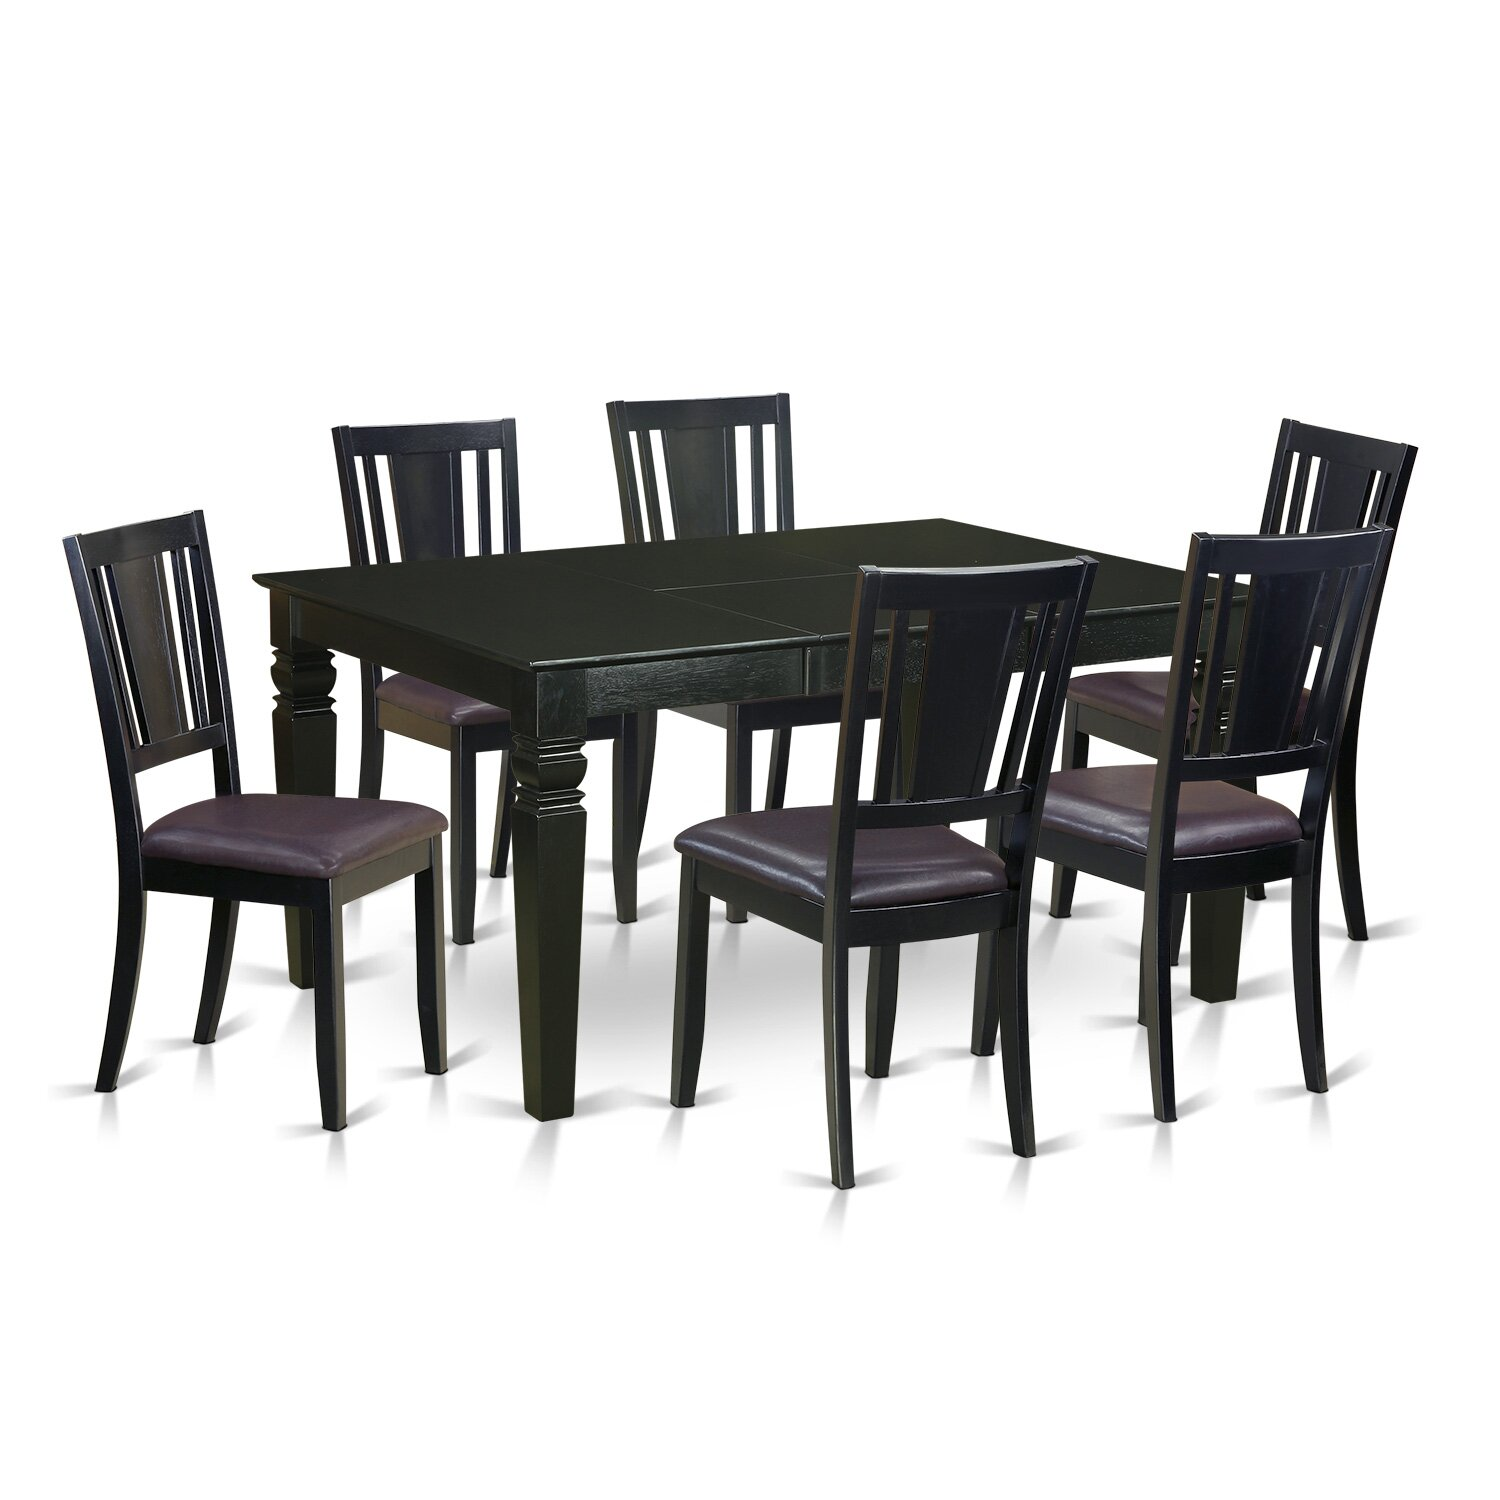 Wooden importers weston 7 piece dining set wayfair for 7 piece dining set